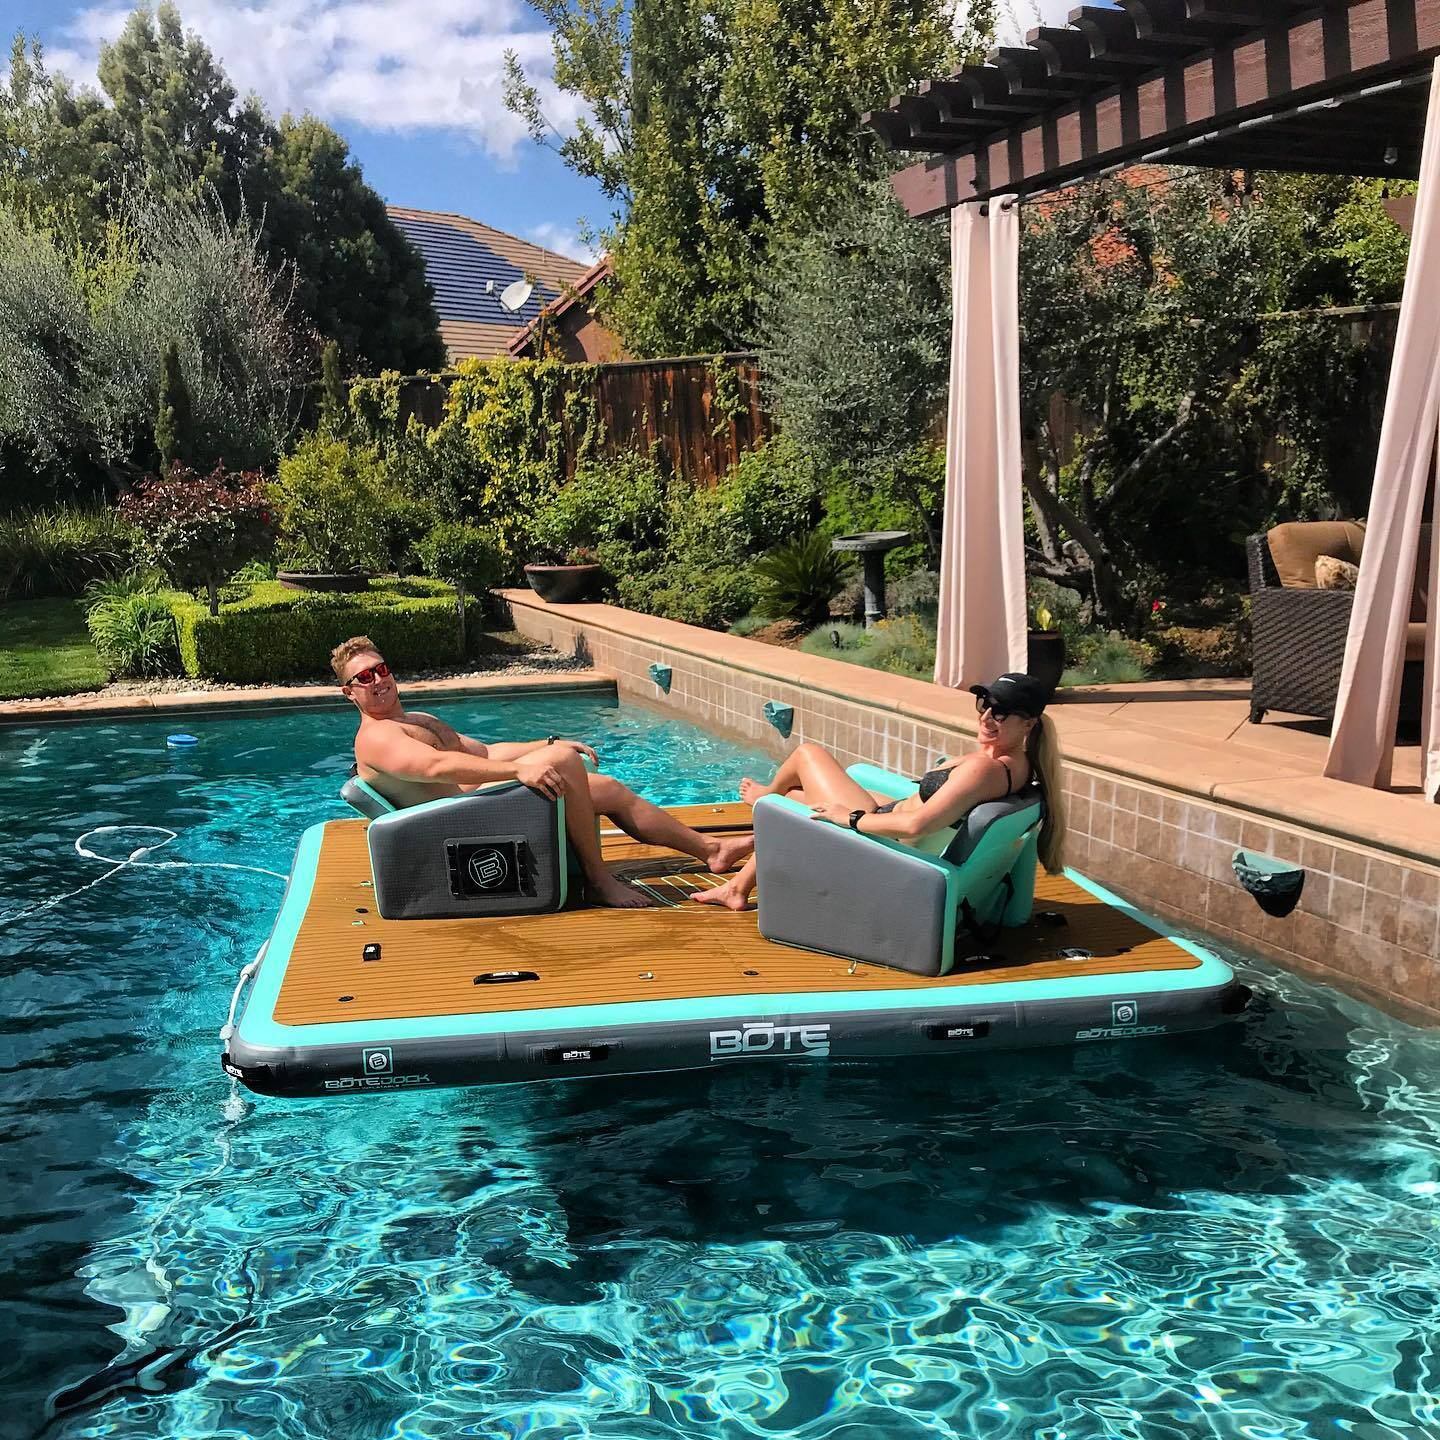 Two people on a seat in a pool gives you an idea of the size of the 7x7 Bote Inflatable Dock.